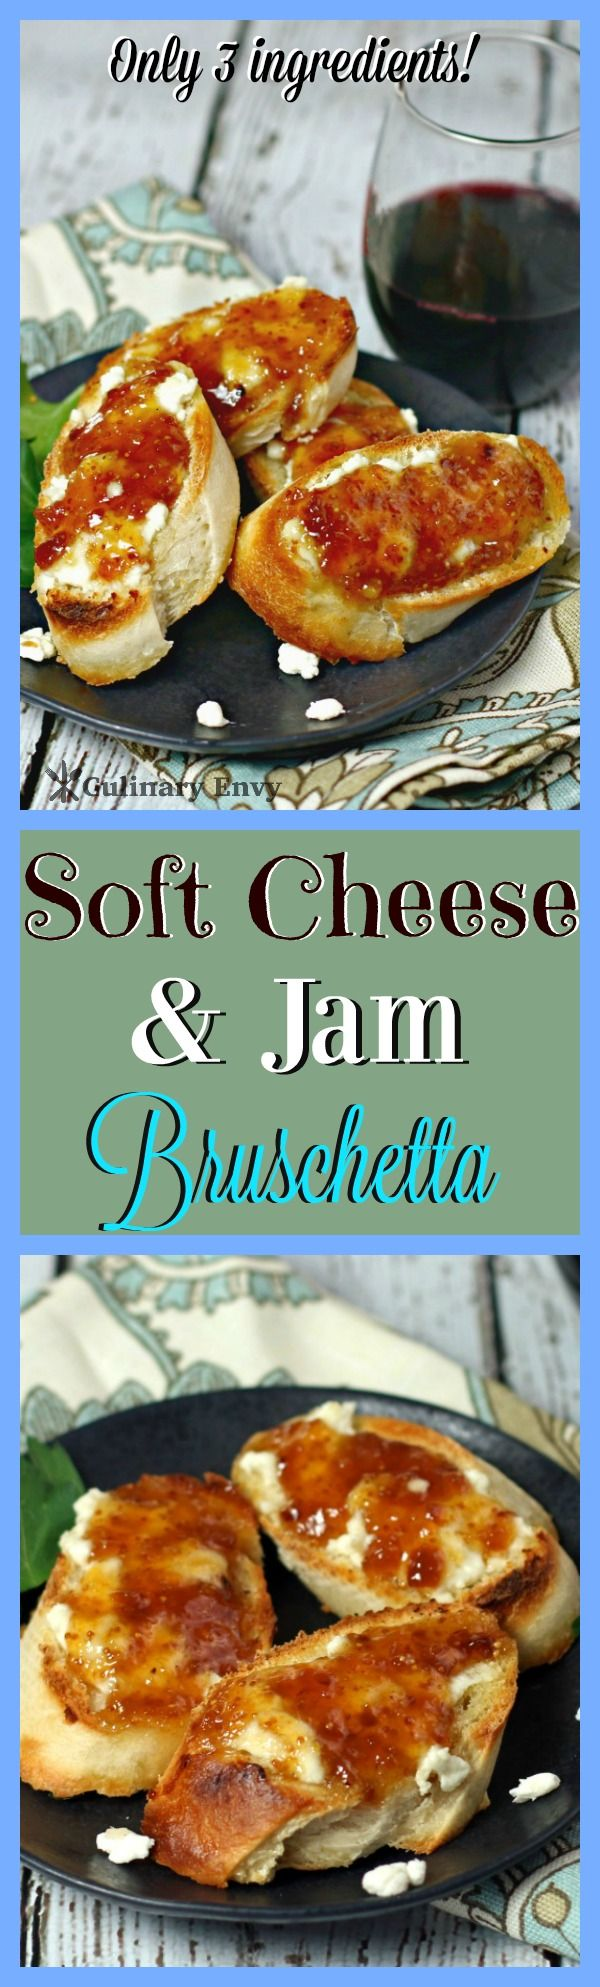 Soft Cheese and Jam Bruschetta is a tangy, creamy, fruit-honeyed, crunchy, lip-smacking Elegant Appetizer that can be EASILY made ahead. A stress-free and exciting recipe that your guests will ADORE!